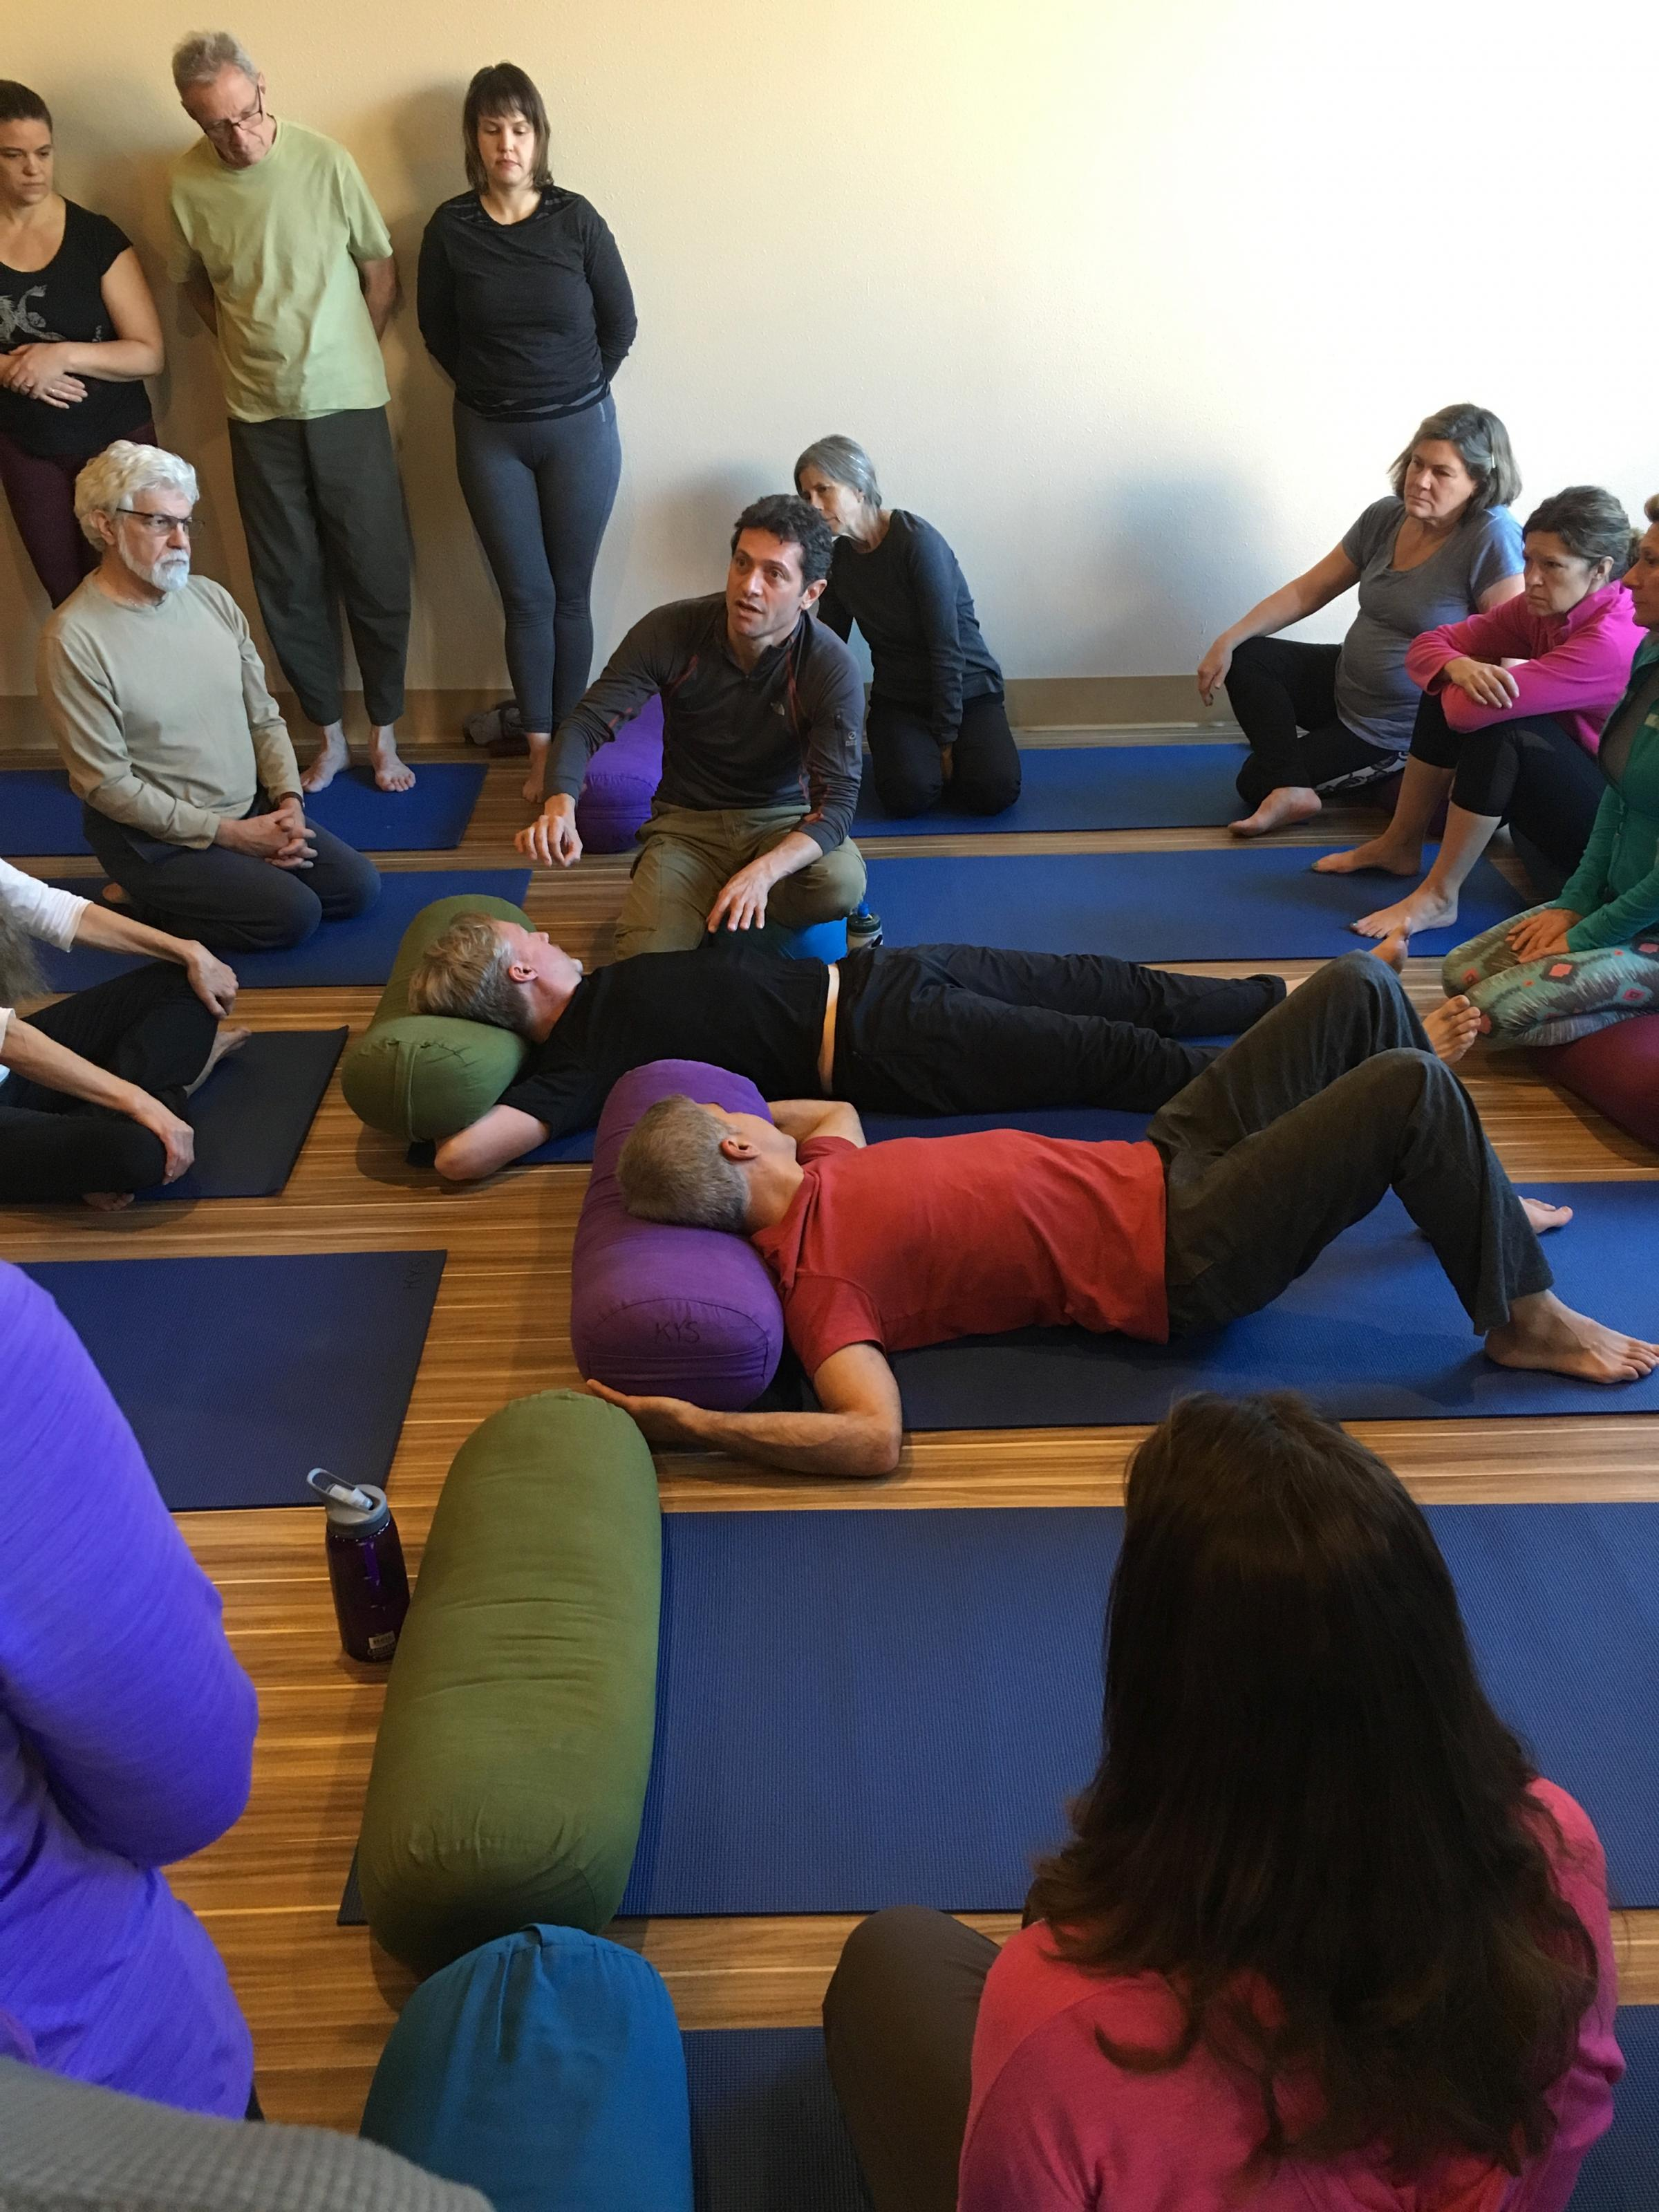 Kaiut Yoga Introductory Workshop - Yoga for Biomechanical Health & Aging with Grace